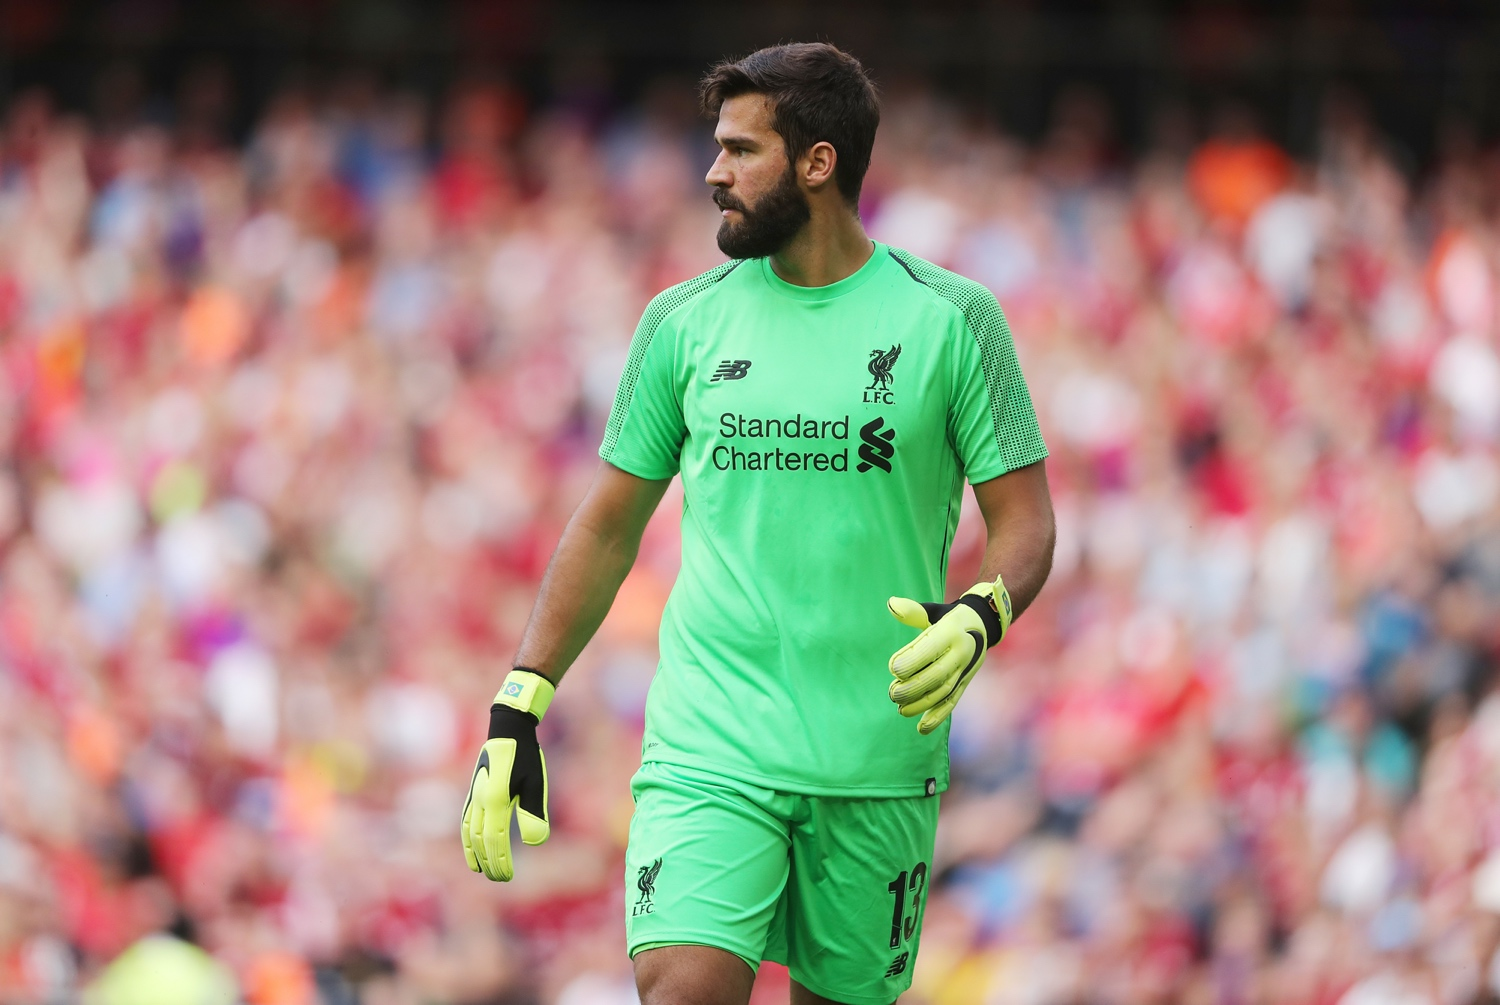 Big goals and clean sheets: Alisson worth his weight in gold